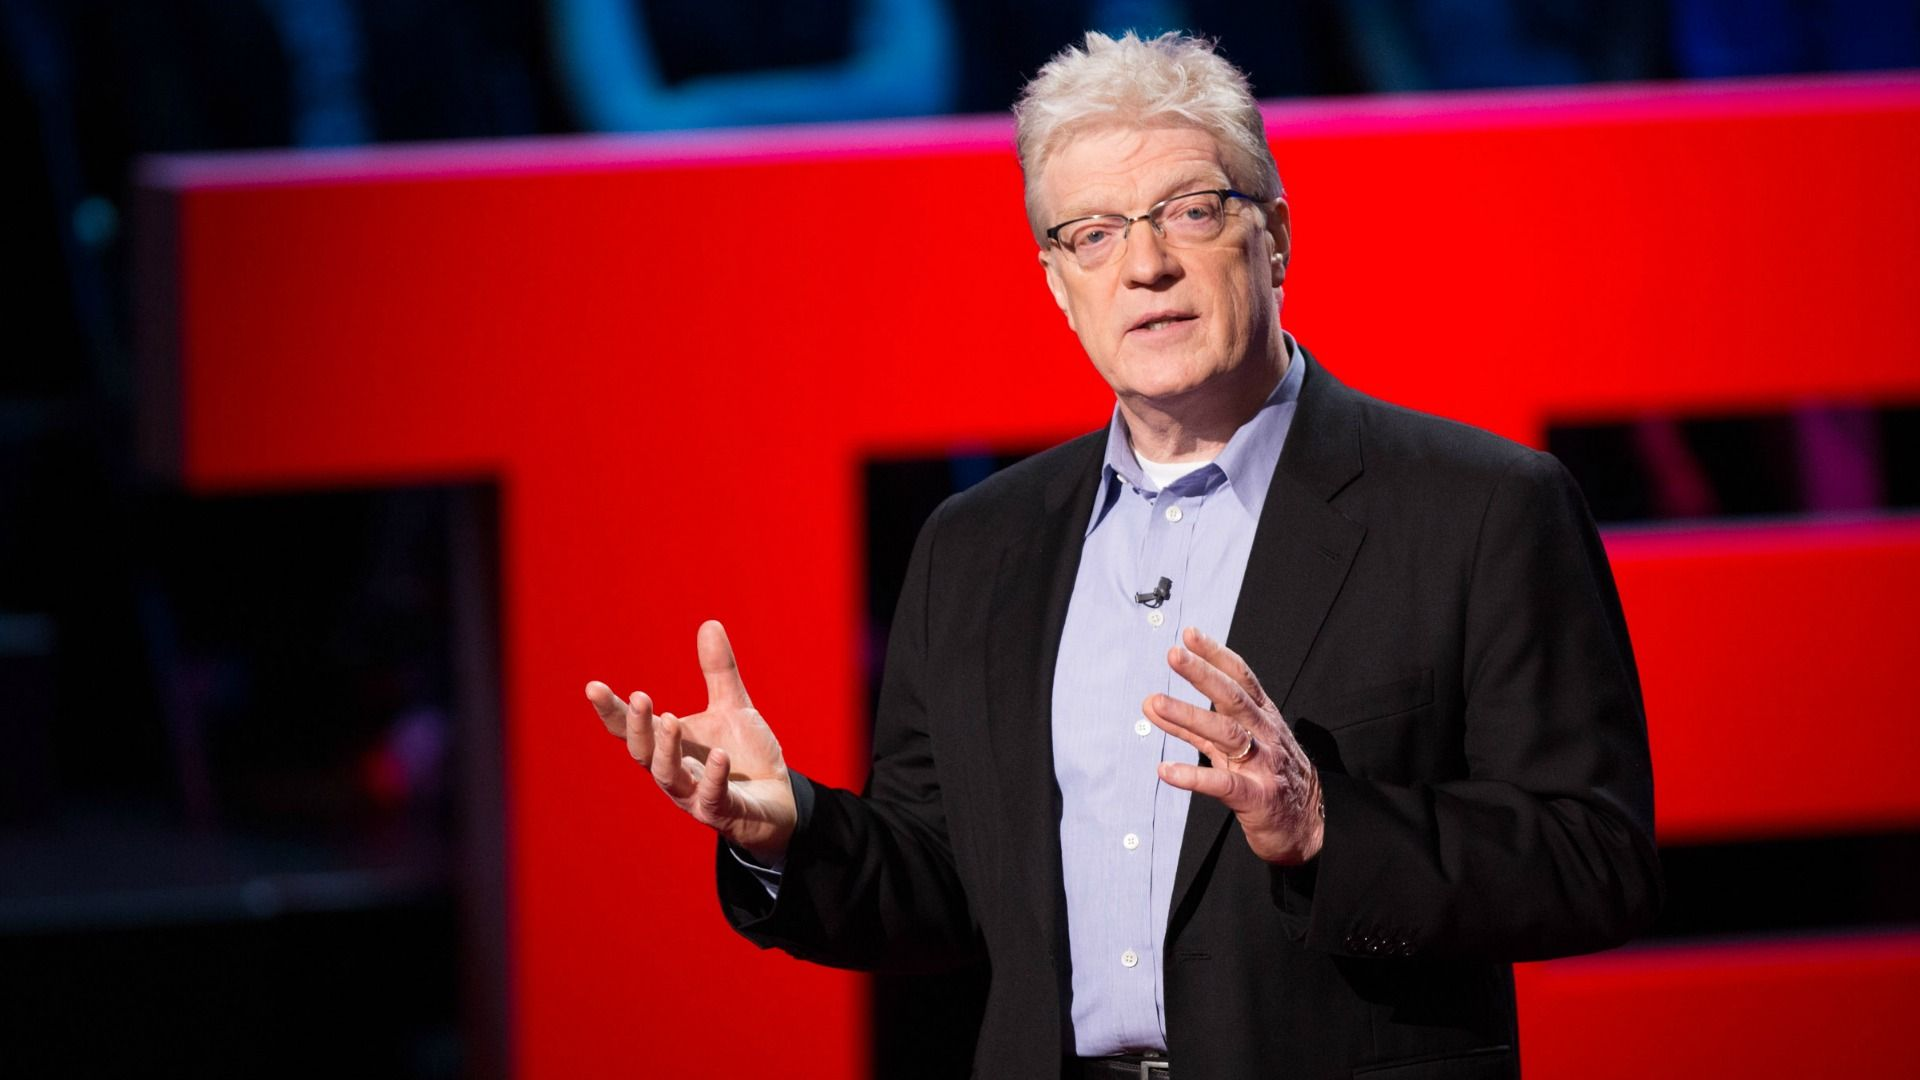 """Sir Ken Robinson is an author, educator and creativity expert who advocates for a diverse curriculum, local input into education strategies, and moving successful aspects of """"alternative"""" education programs into the mainstream."""